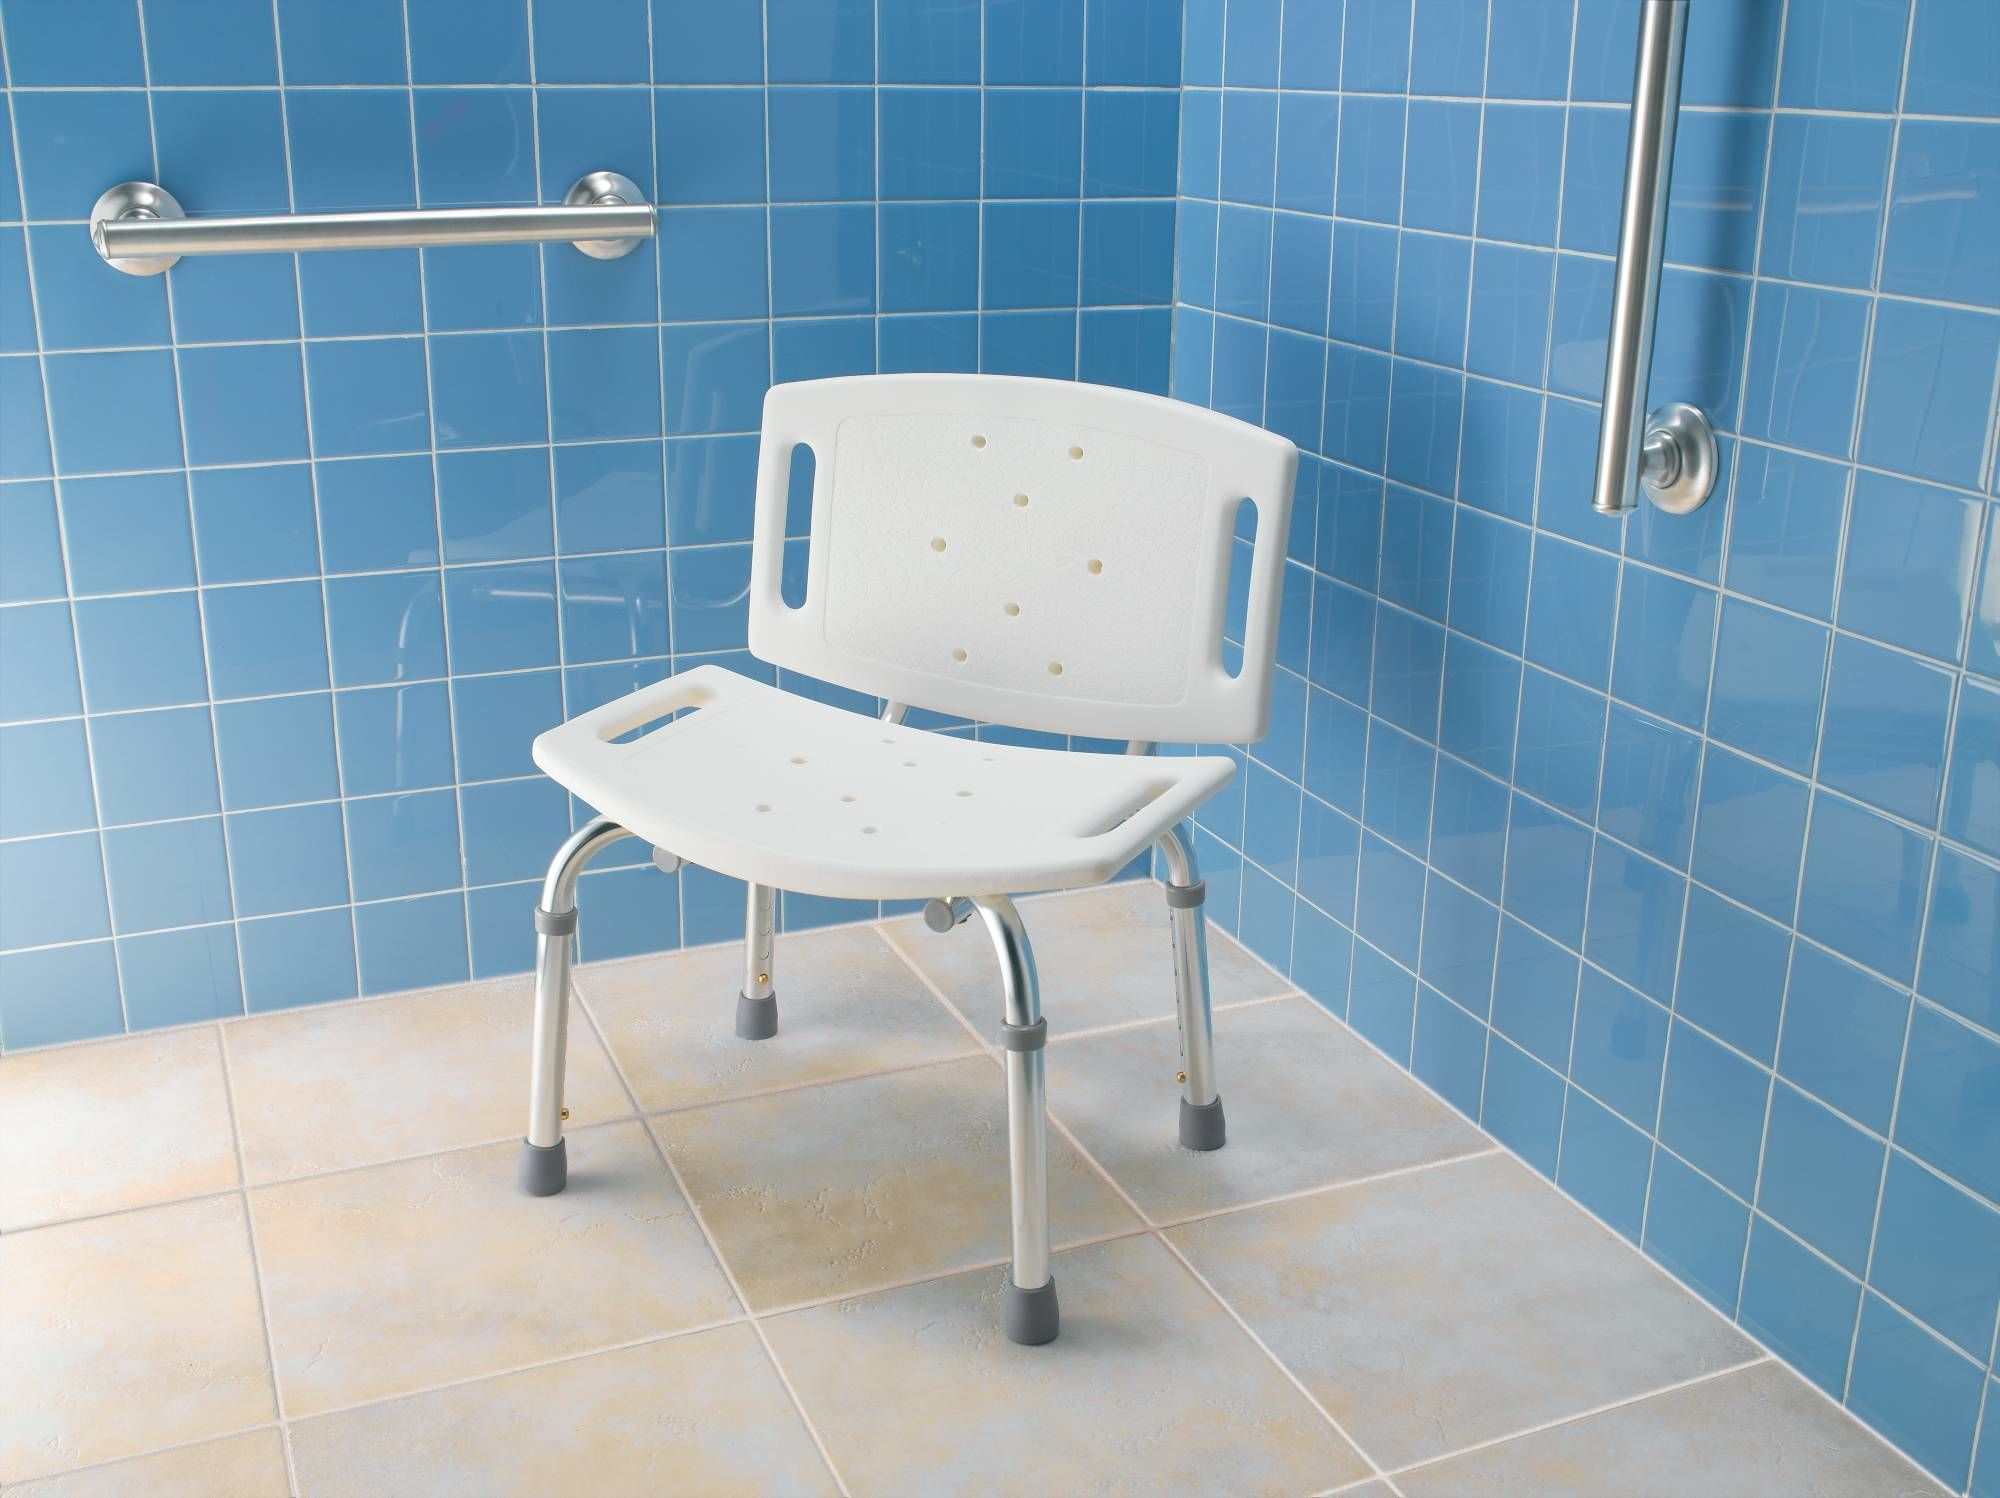 Moen CSIDN7030 White Adjustable Shower Seat with Seat Back from the ...